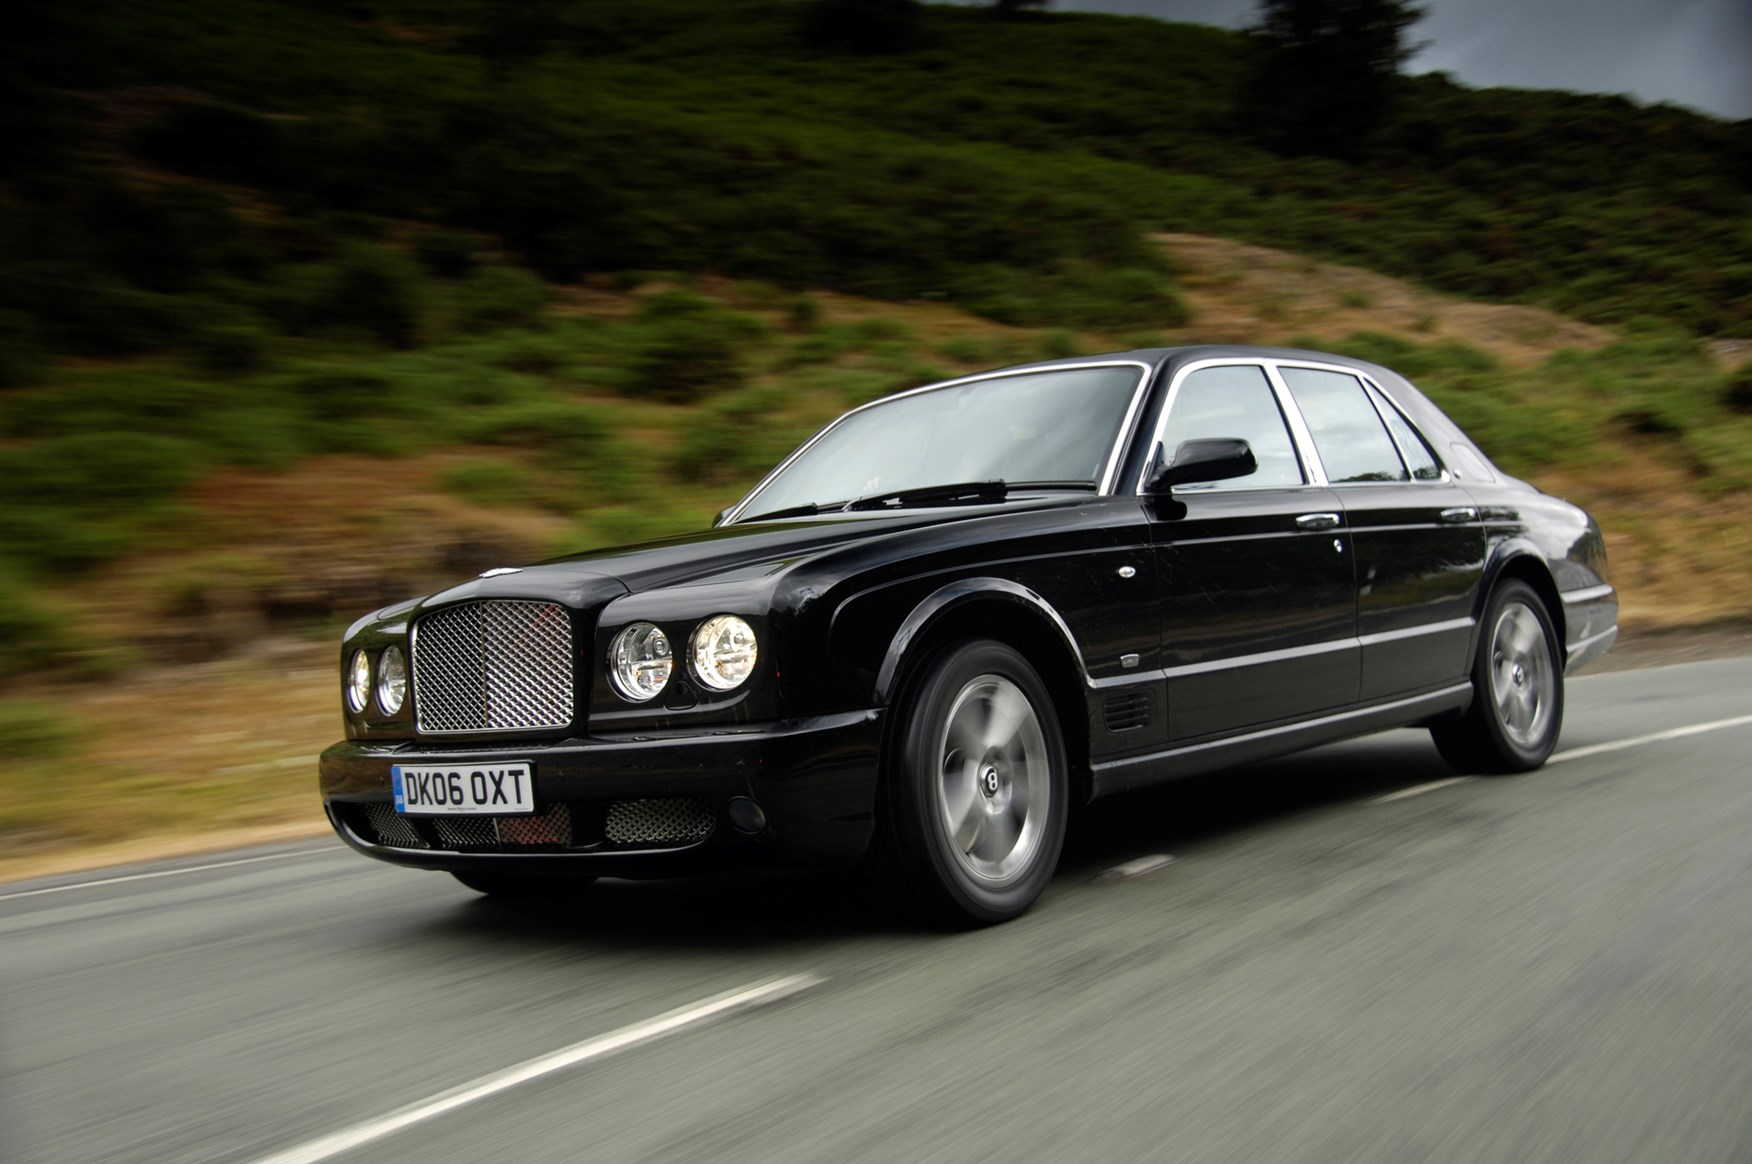 View all images of the bentley arnage 98 09